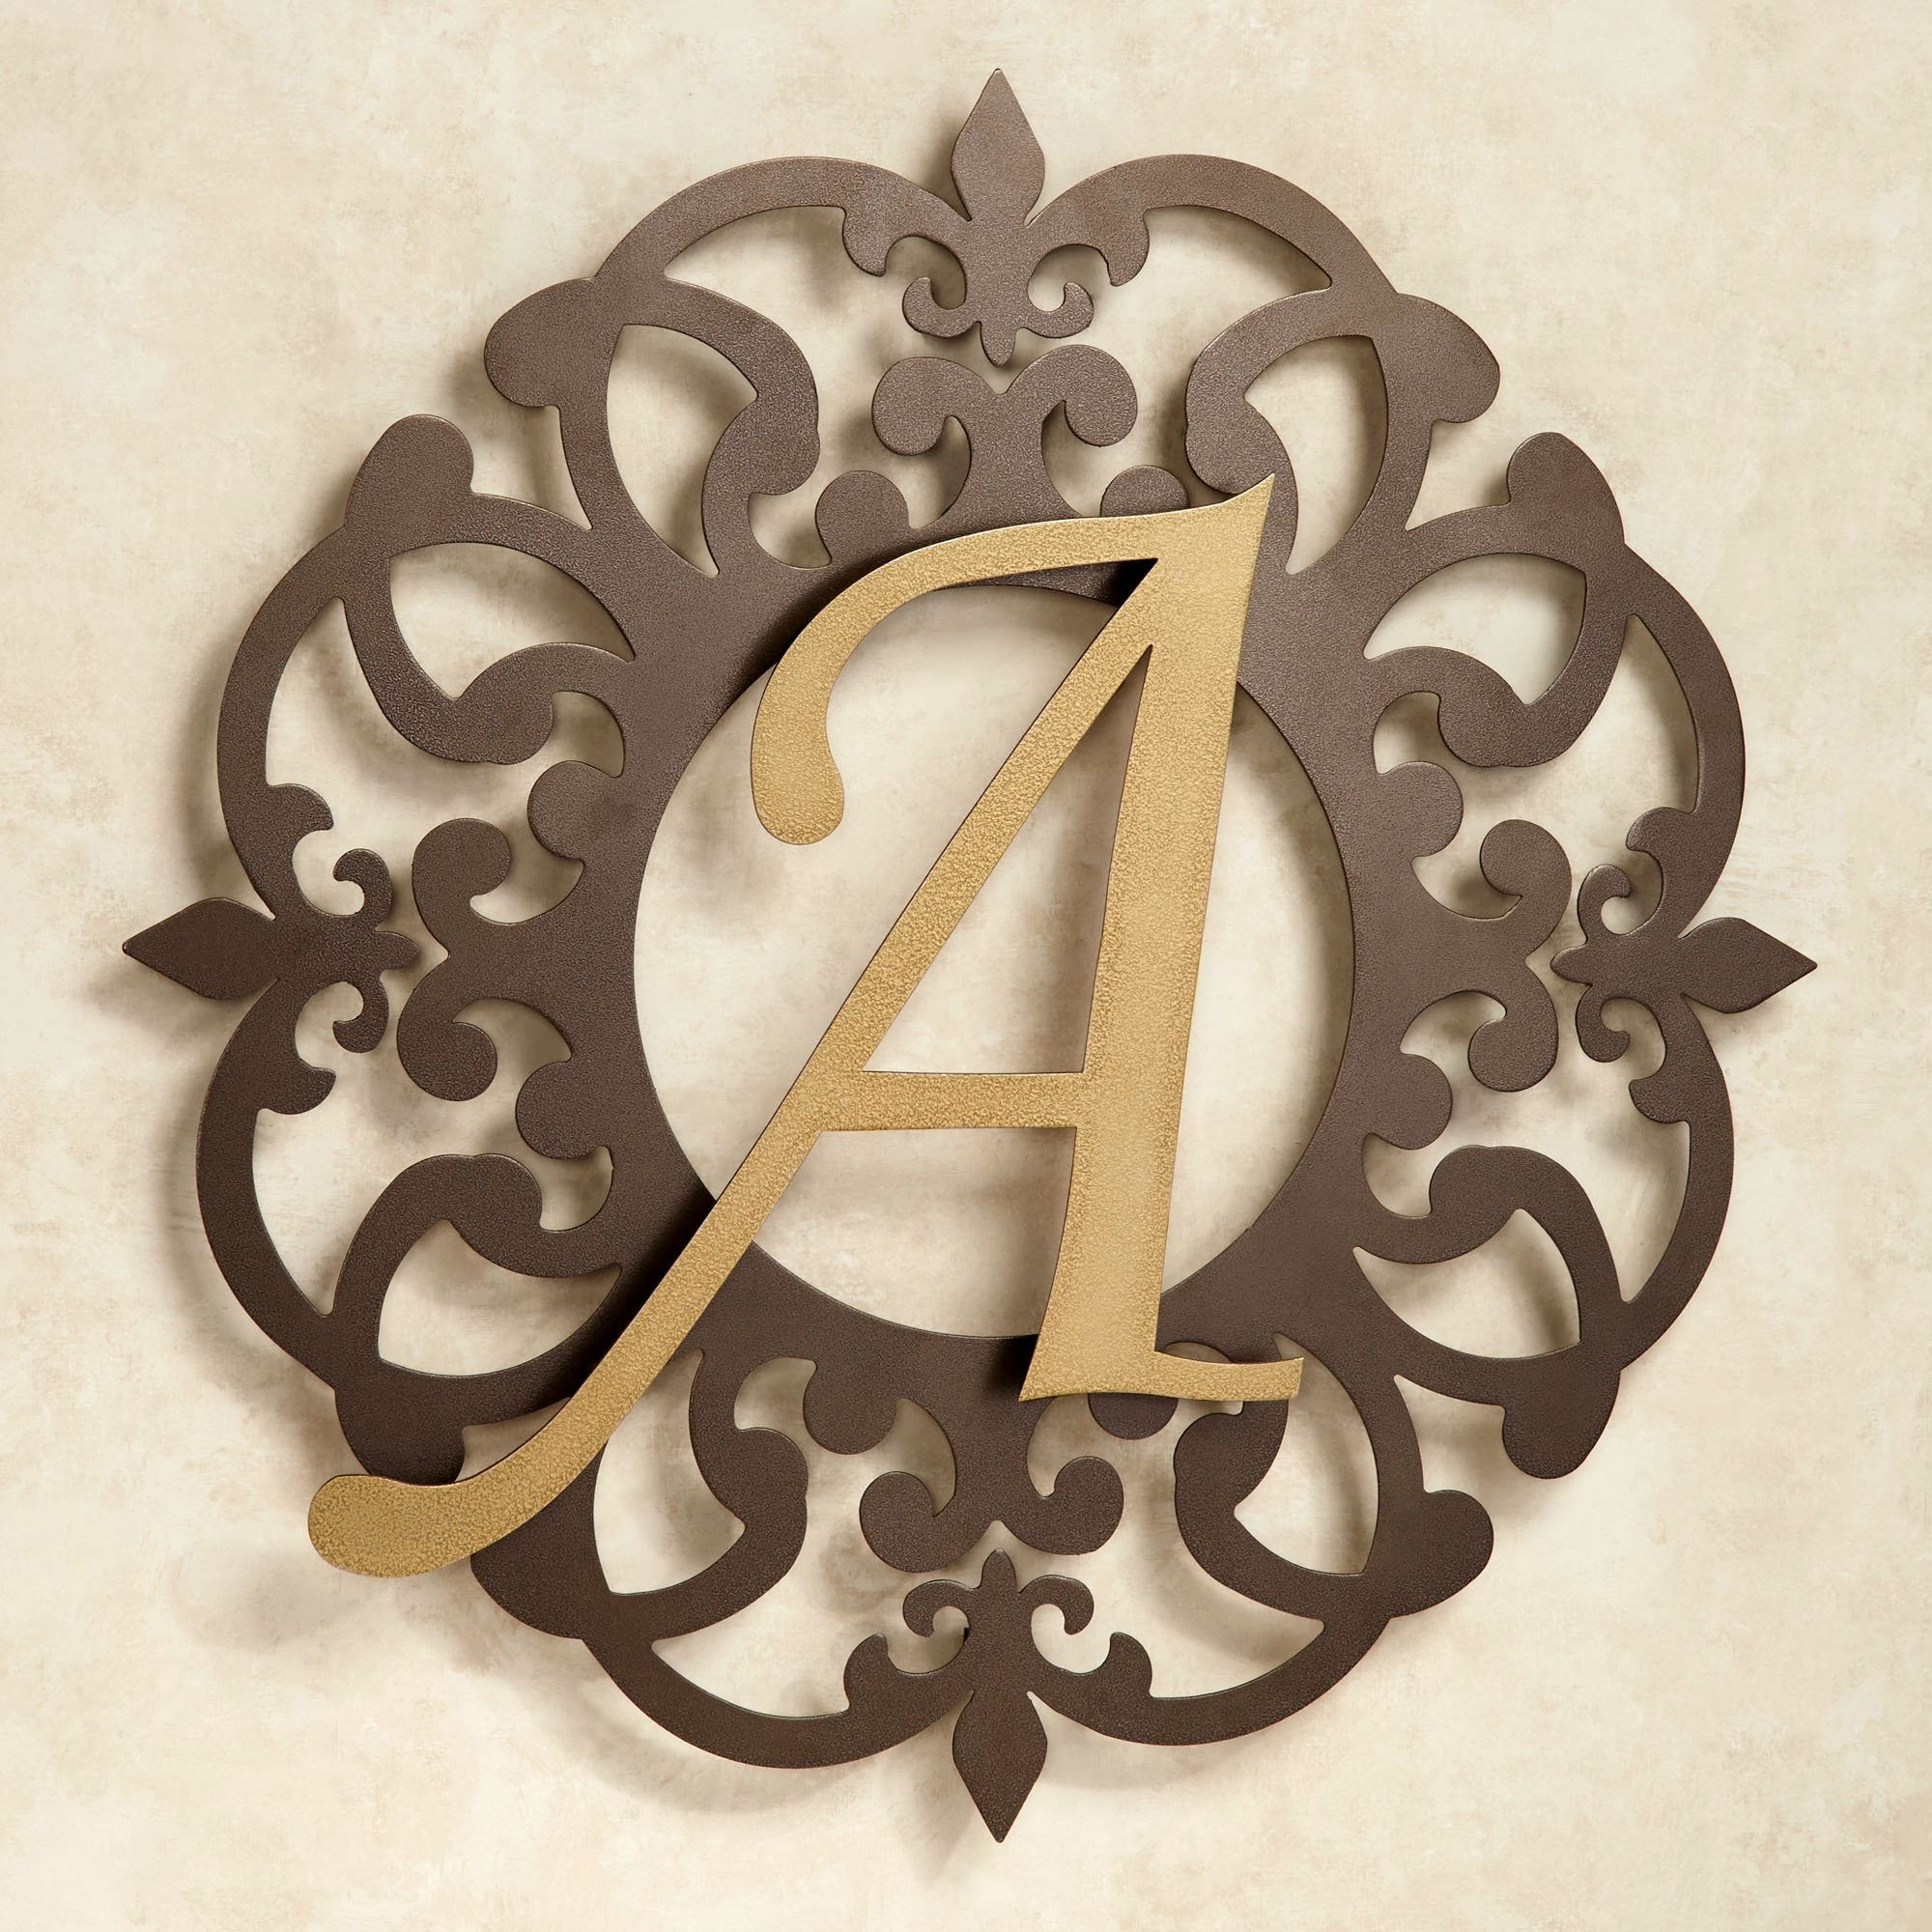 Heritage Monogram Metal Wall Art Sign Jasonw Studios